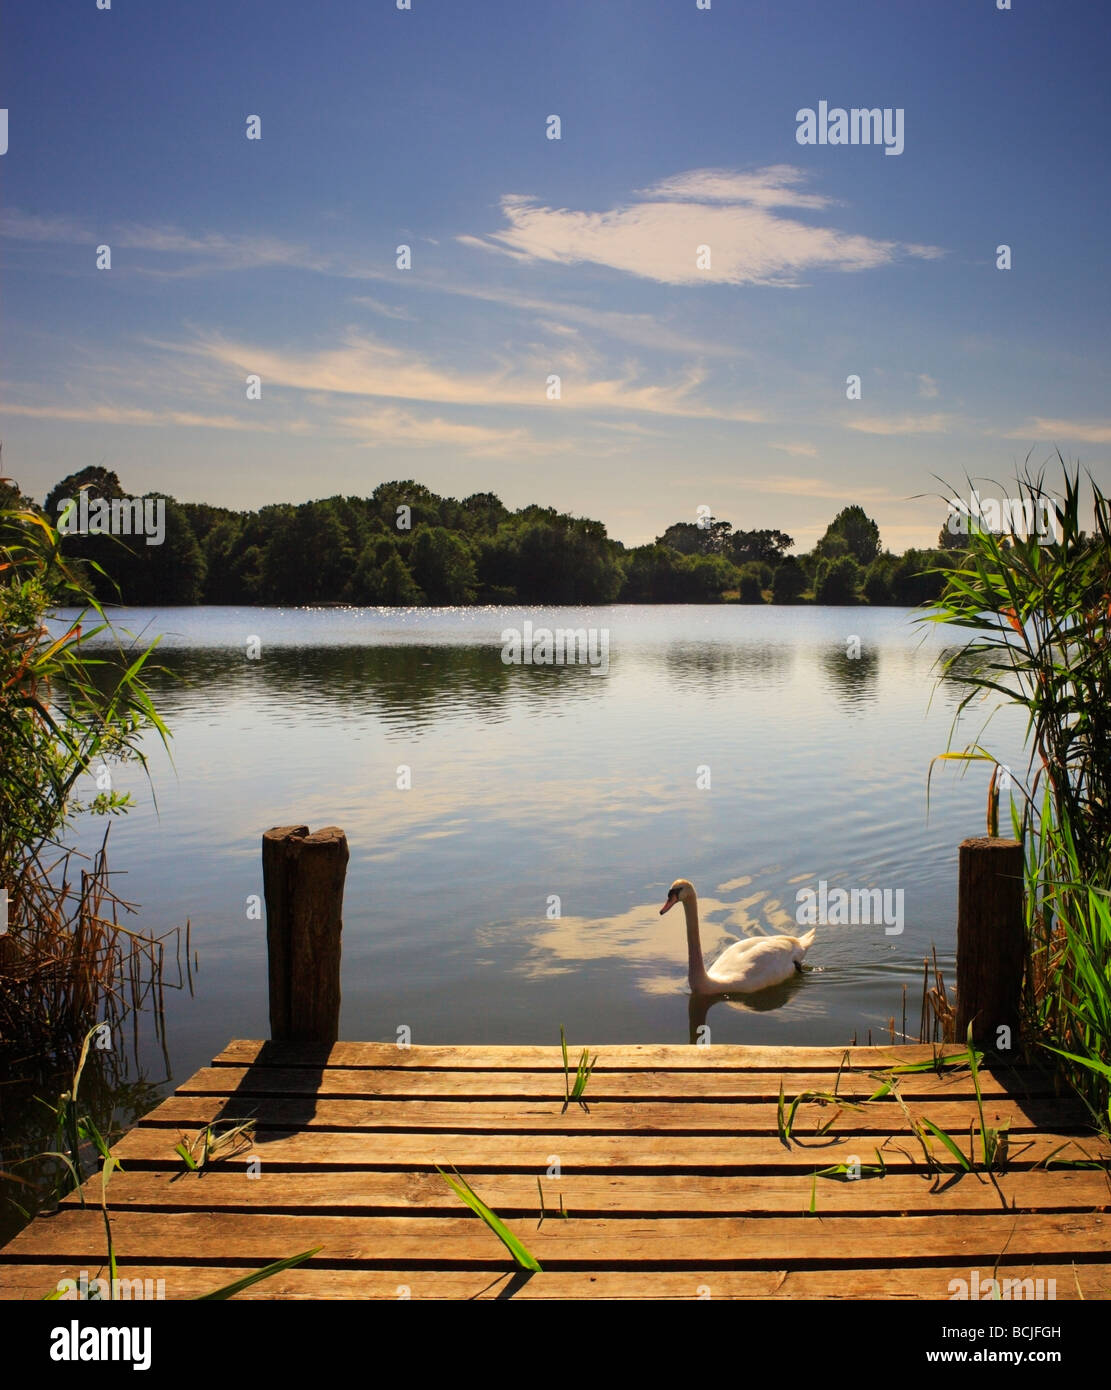 Swan and jetty. Haysden country park Tonbridge. - Stock Image